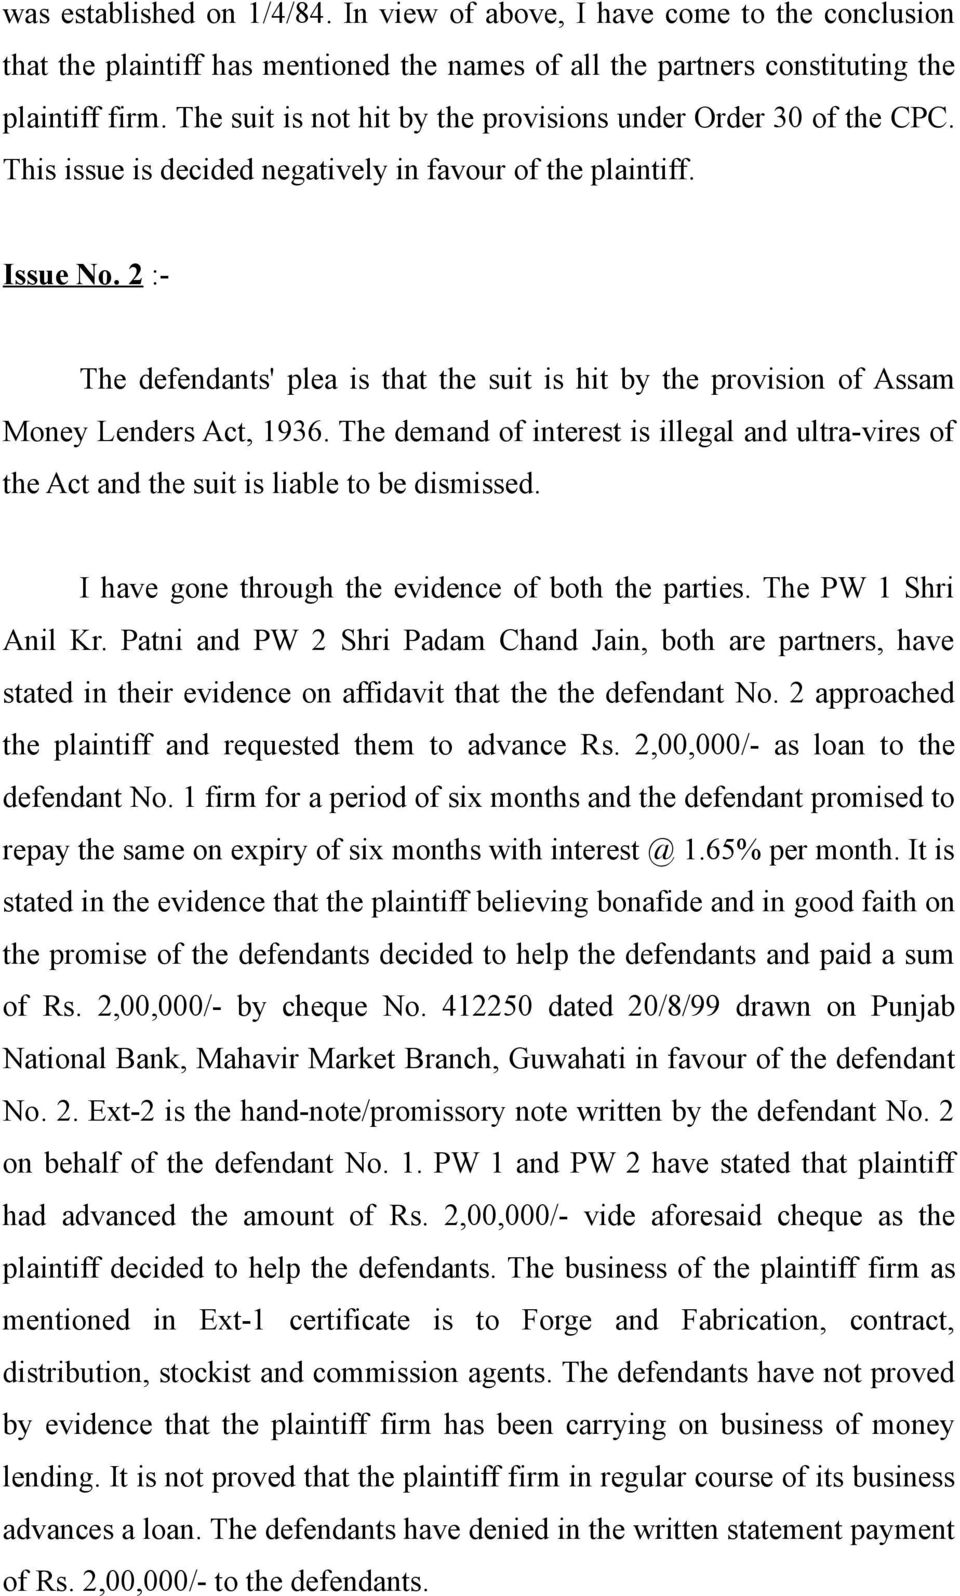 2 :- The defendants' plea is that the suit is hit by the provision of Assam Money Lenders Act, 1936.